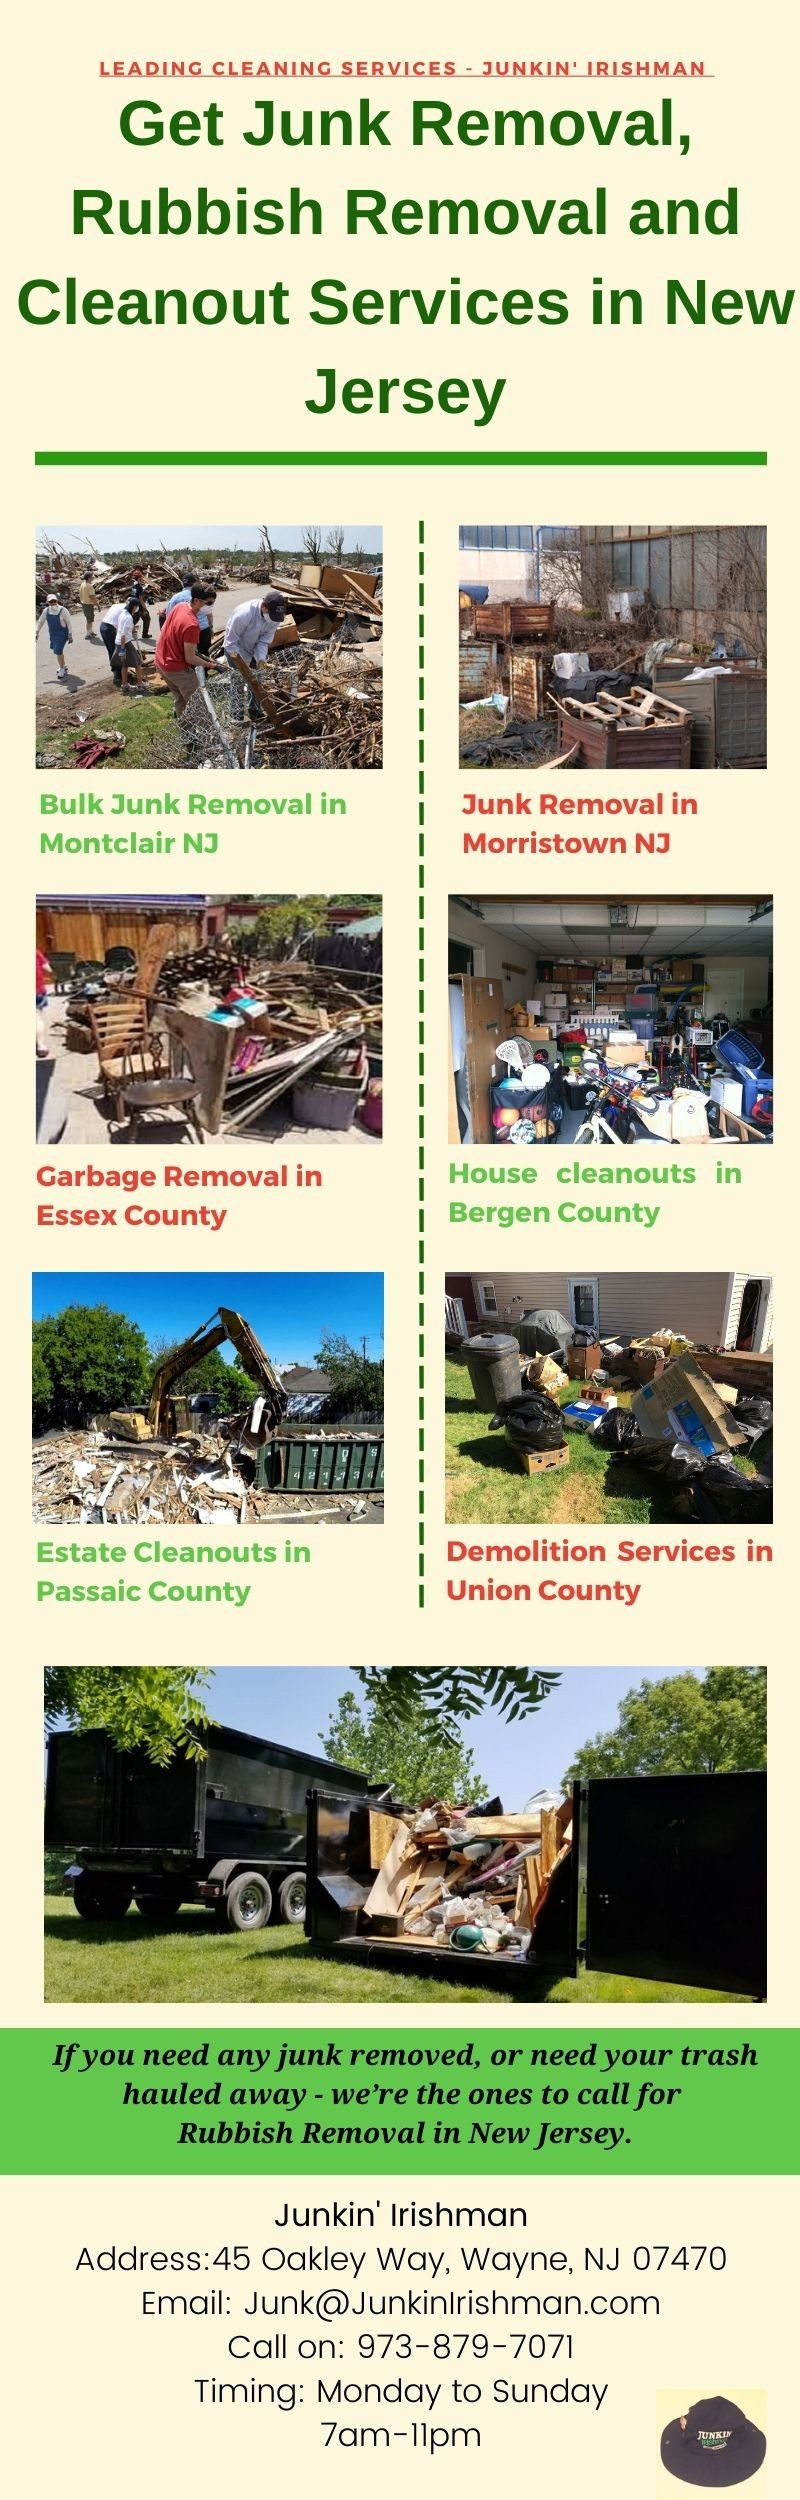 Call for Junk Removal, Rubbish Removal and Cleanout Services in NJ